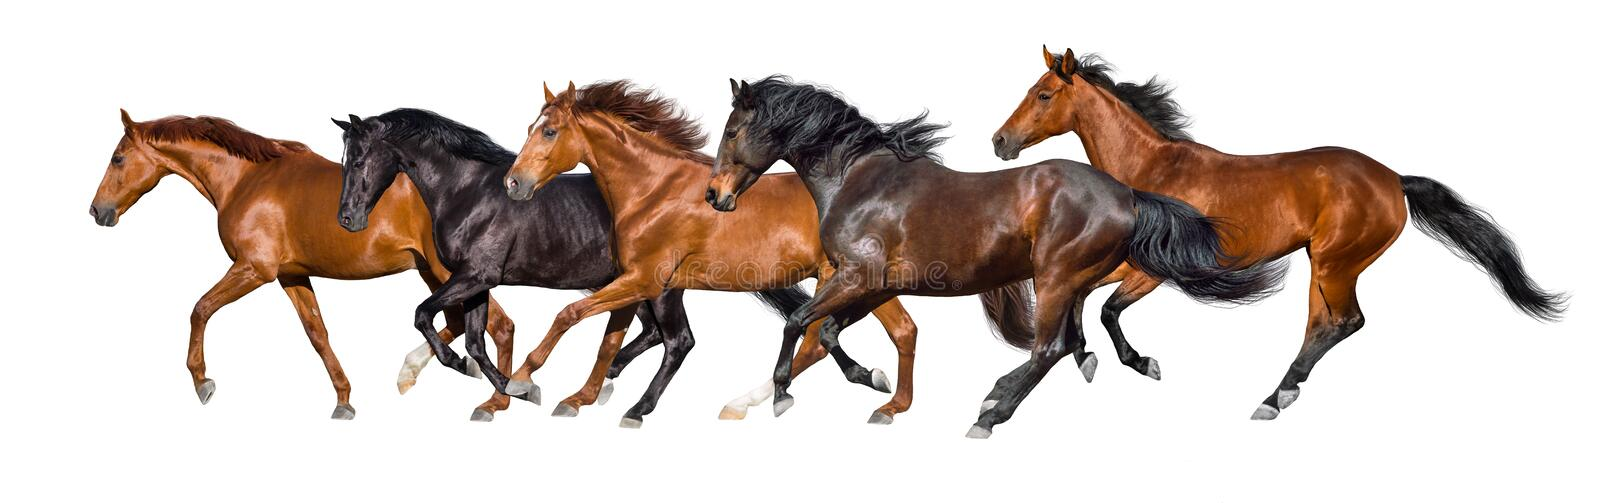 Horses run isolated stock images